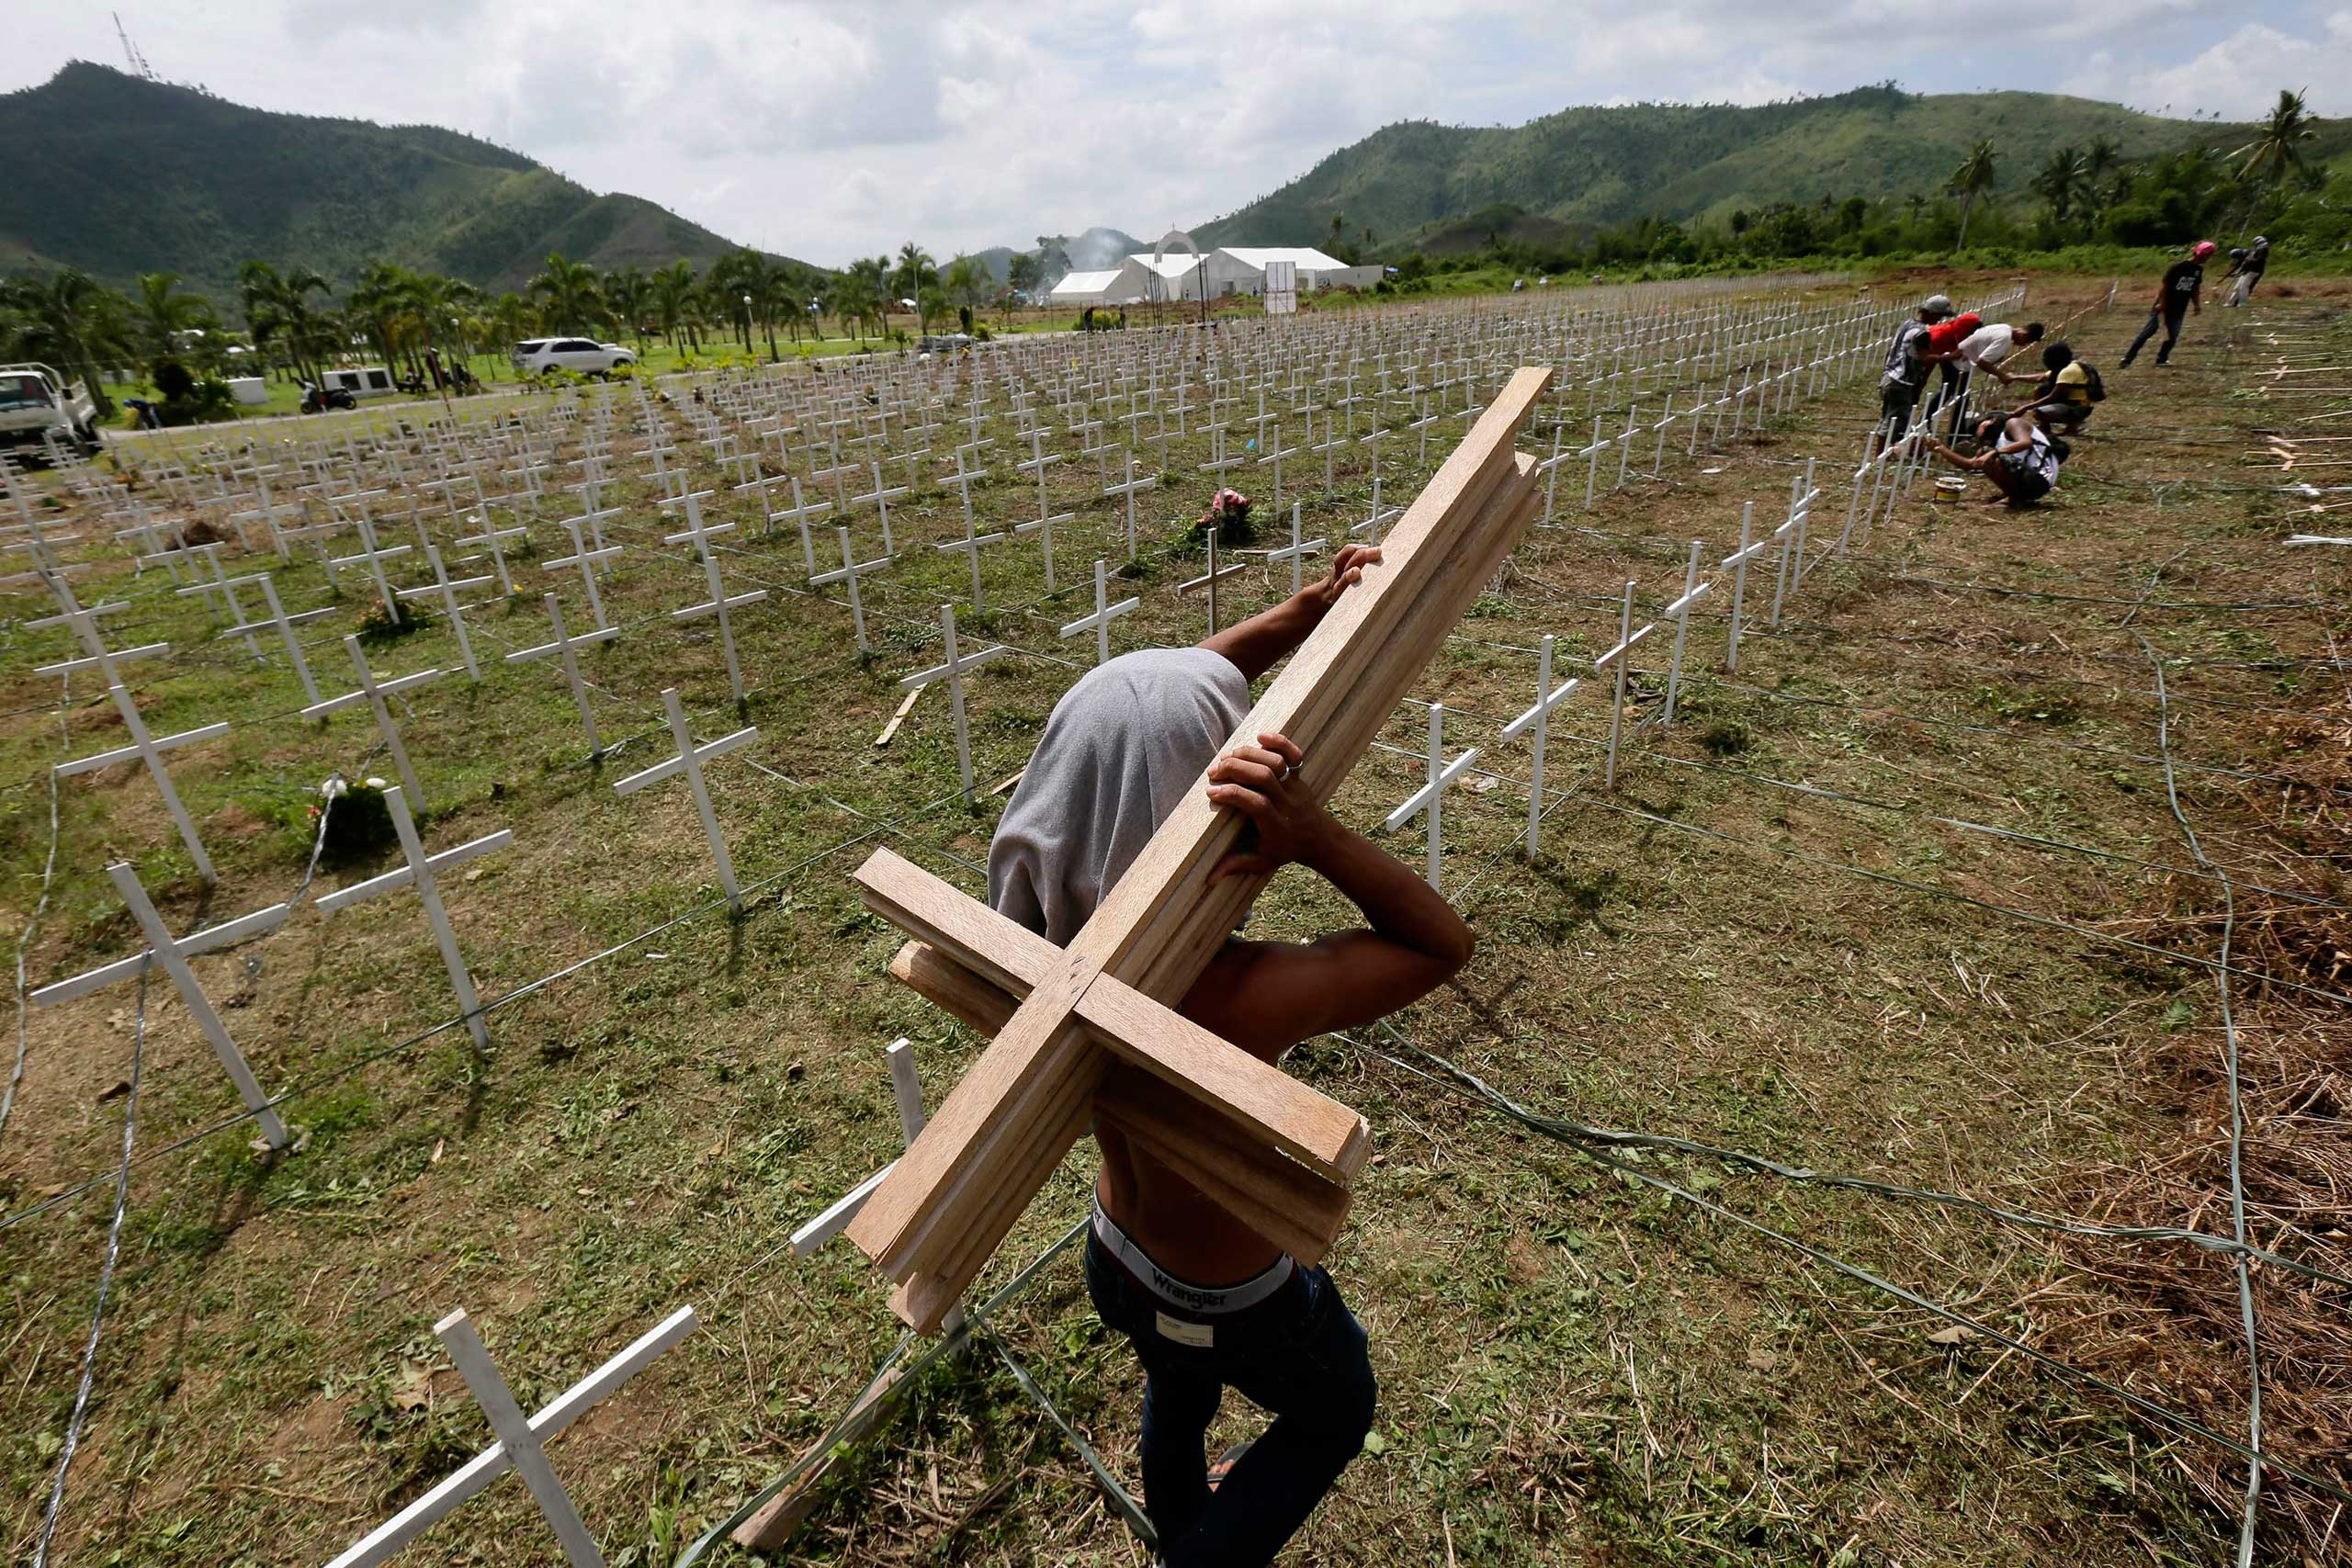 Nov. 5, 2014. Wooden crosses are pitched by workers at a new mass grave of about 3,000 typhoon Haiyan victims in Tacloban City, Philippines. One year after Haiyan left nearly 8,000 people dead or missing in the eastern Philippines, many survivors are still suffering from emotional distress despite being busy with physically rebuilding their lives.